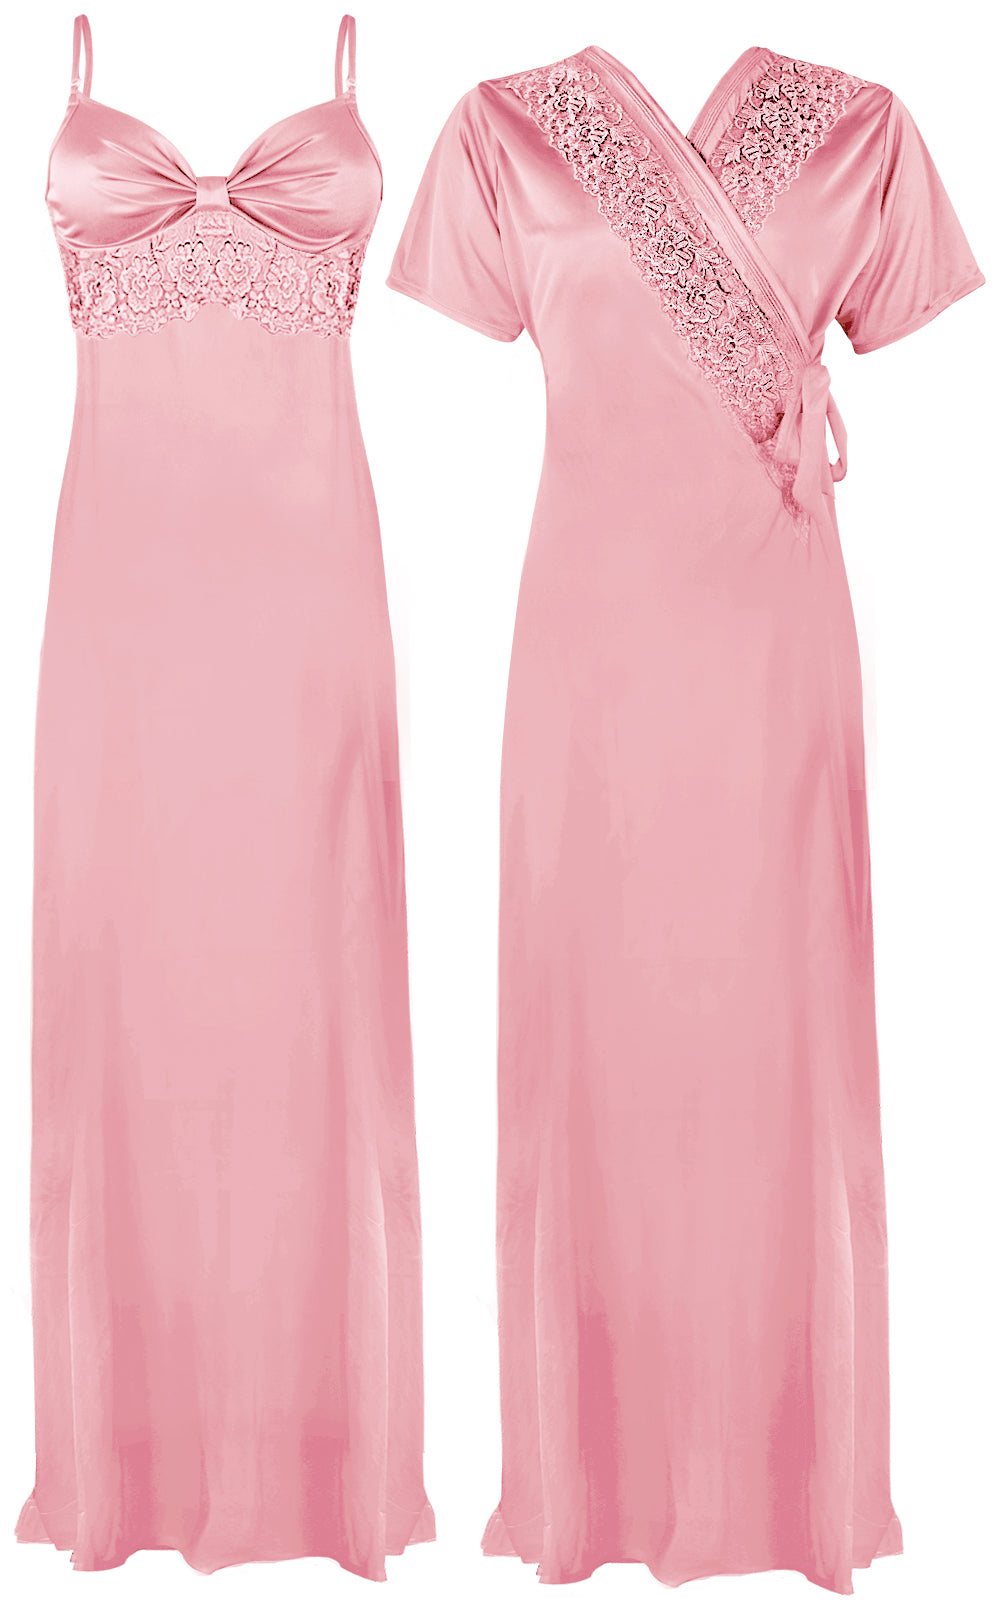 Colour: Baby Pink 2 Pcs Strappy Lace Long Nighty With Robe Size: One Size